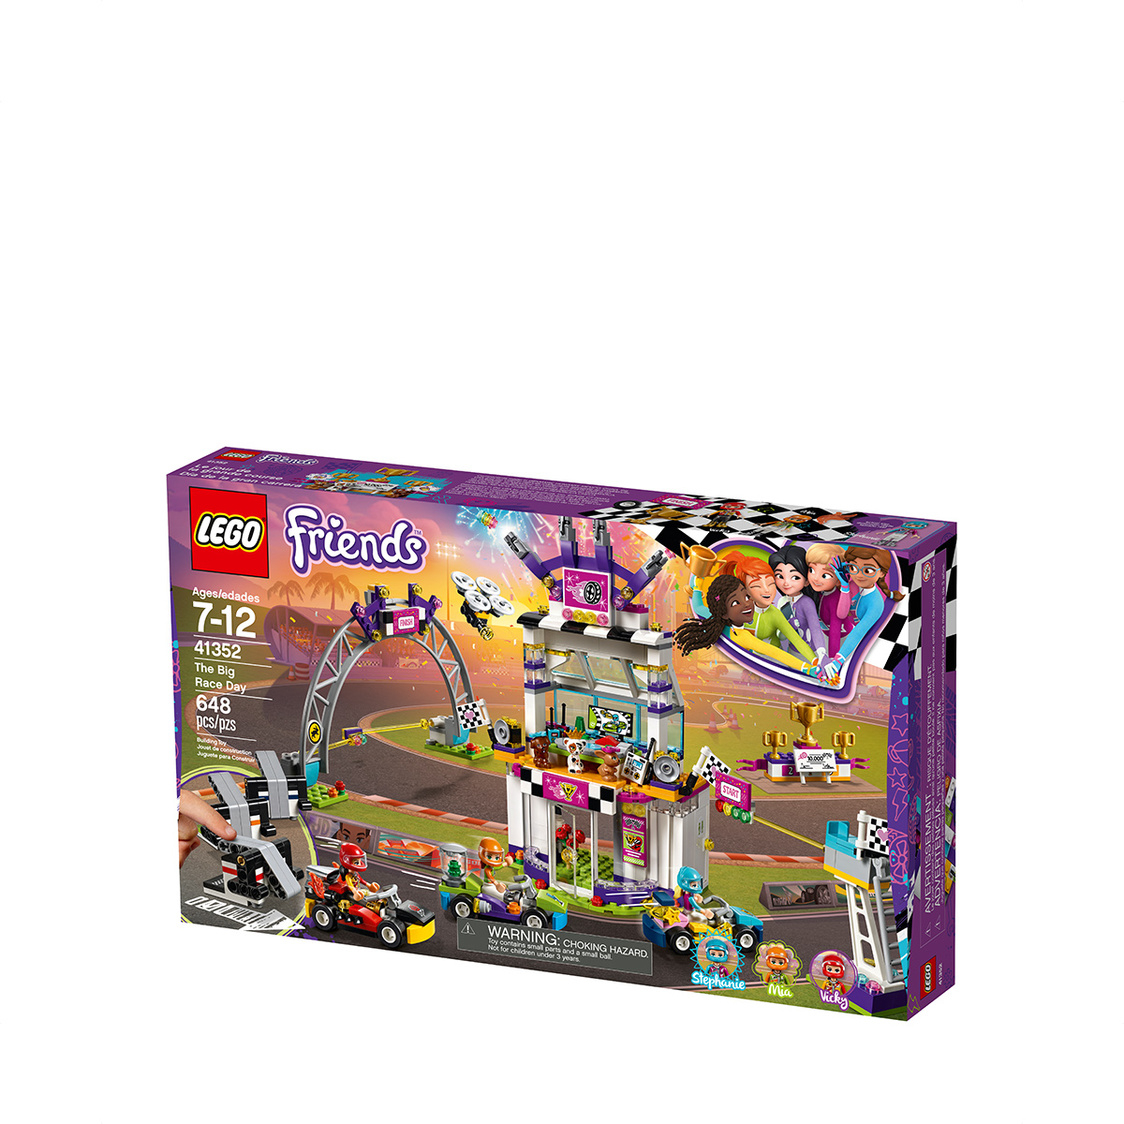 The Big Race Day Lego Friends 41352